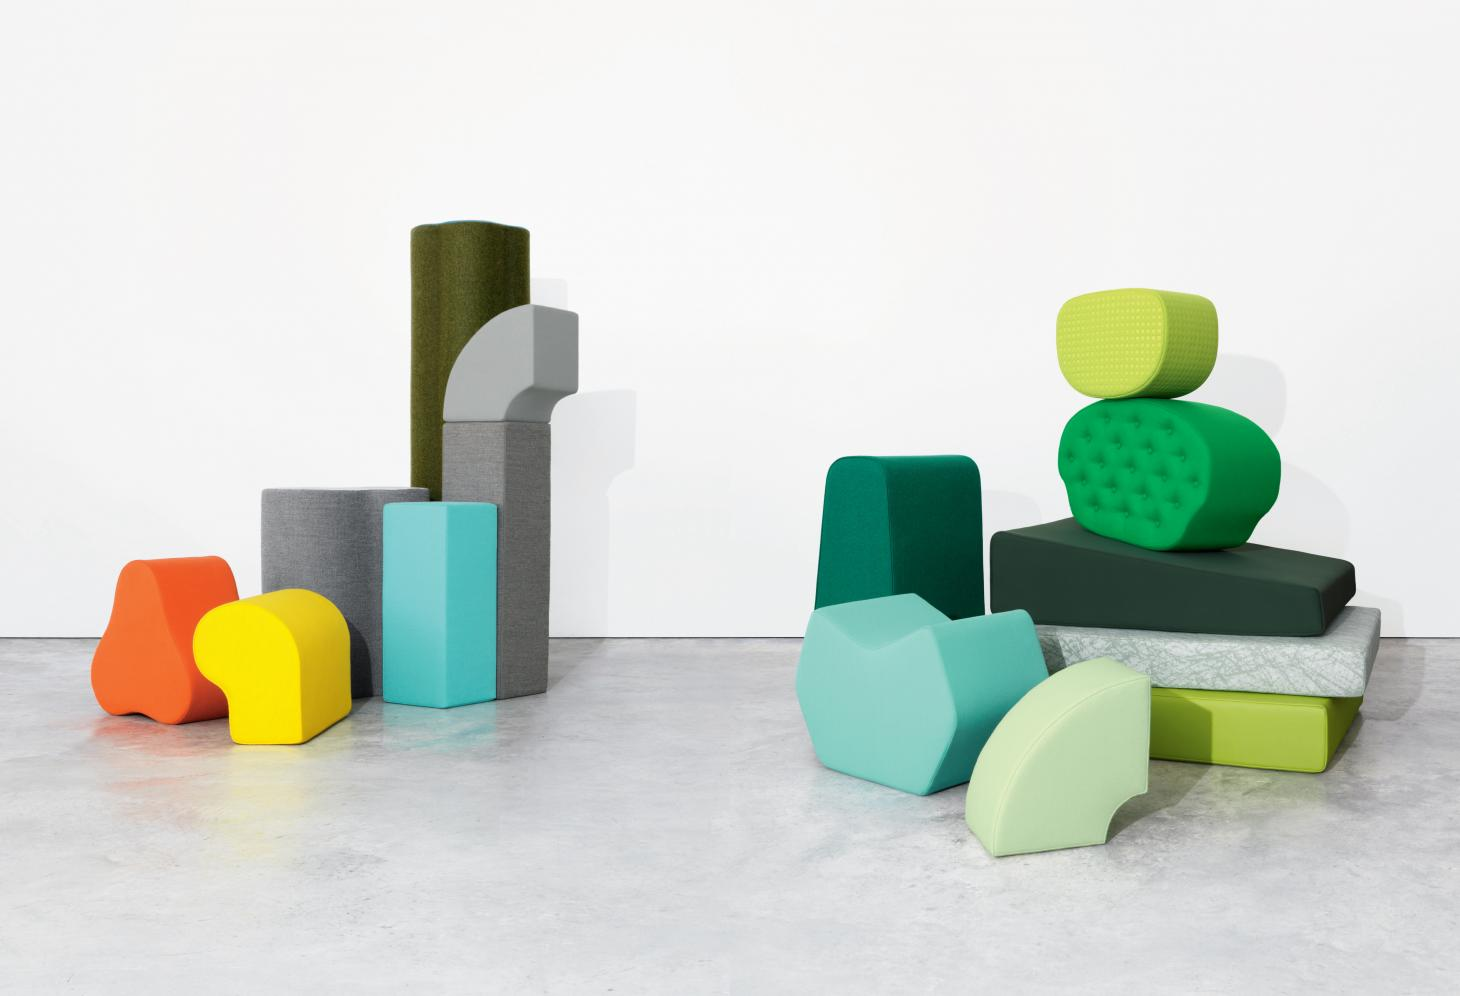 Kvadrat's textiles in bright colours are presented through a series of stacked upholstered abstract shapes